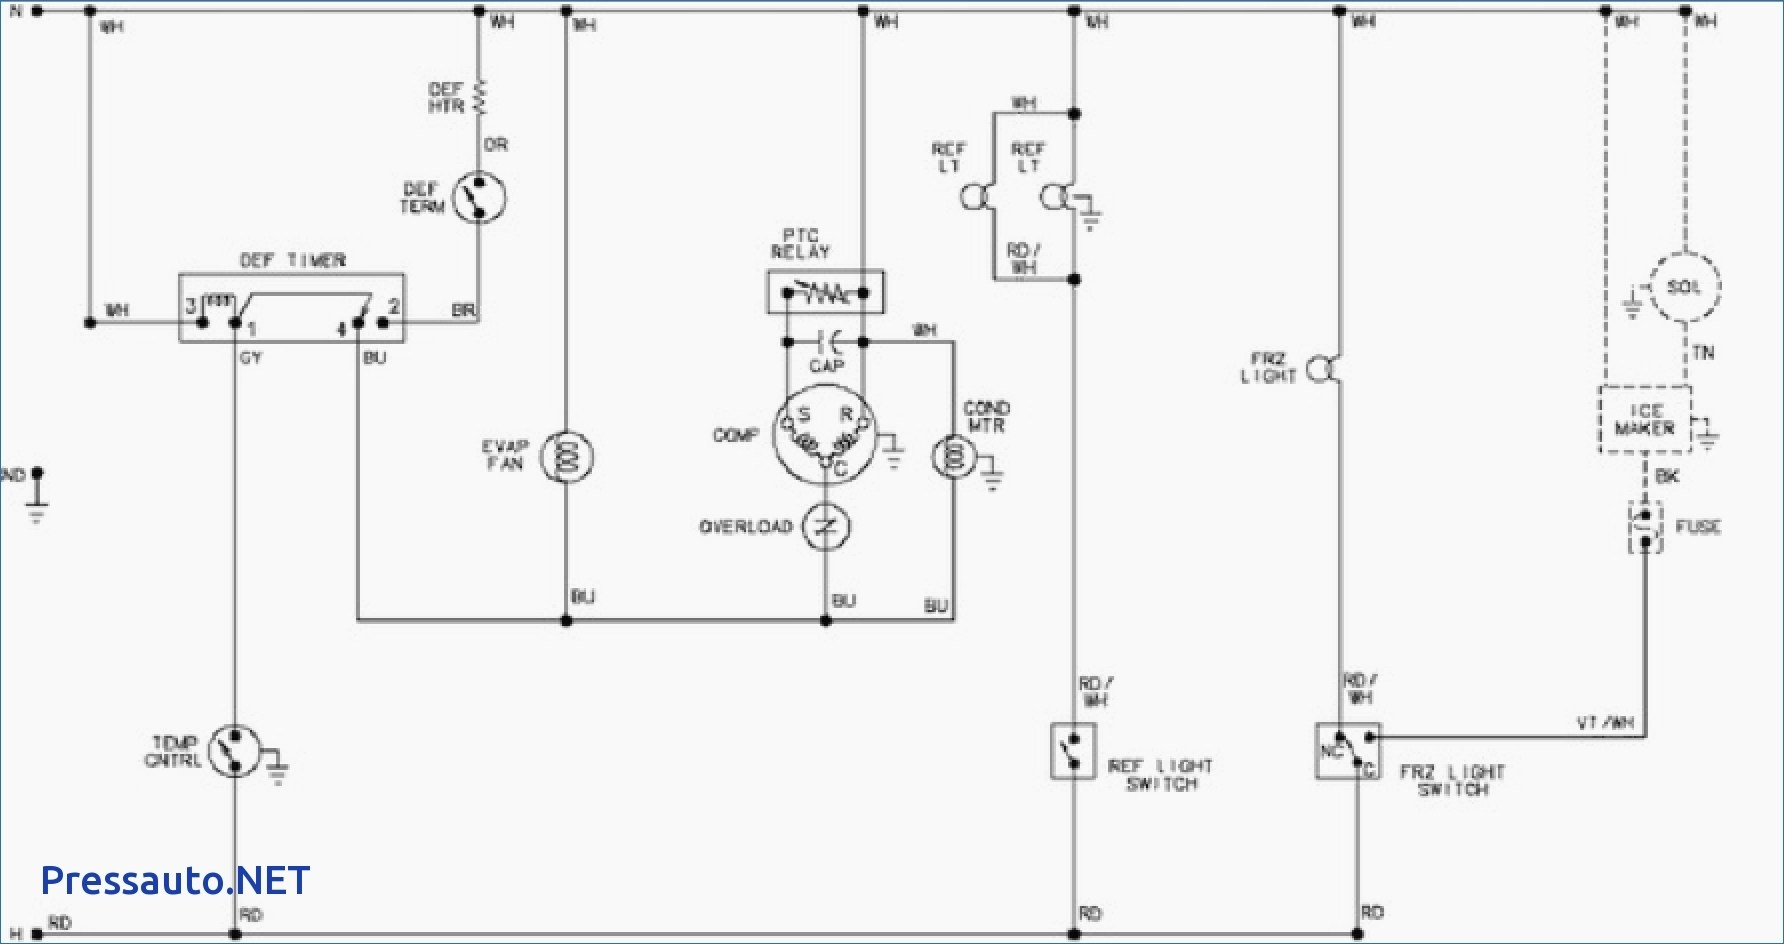 refrigerator wiring diagram pdf Collection-Amana Model Arb2257cw Need Legible Pdf Wiring Diagram And Within Refrigerator 20-e